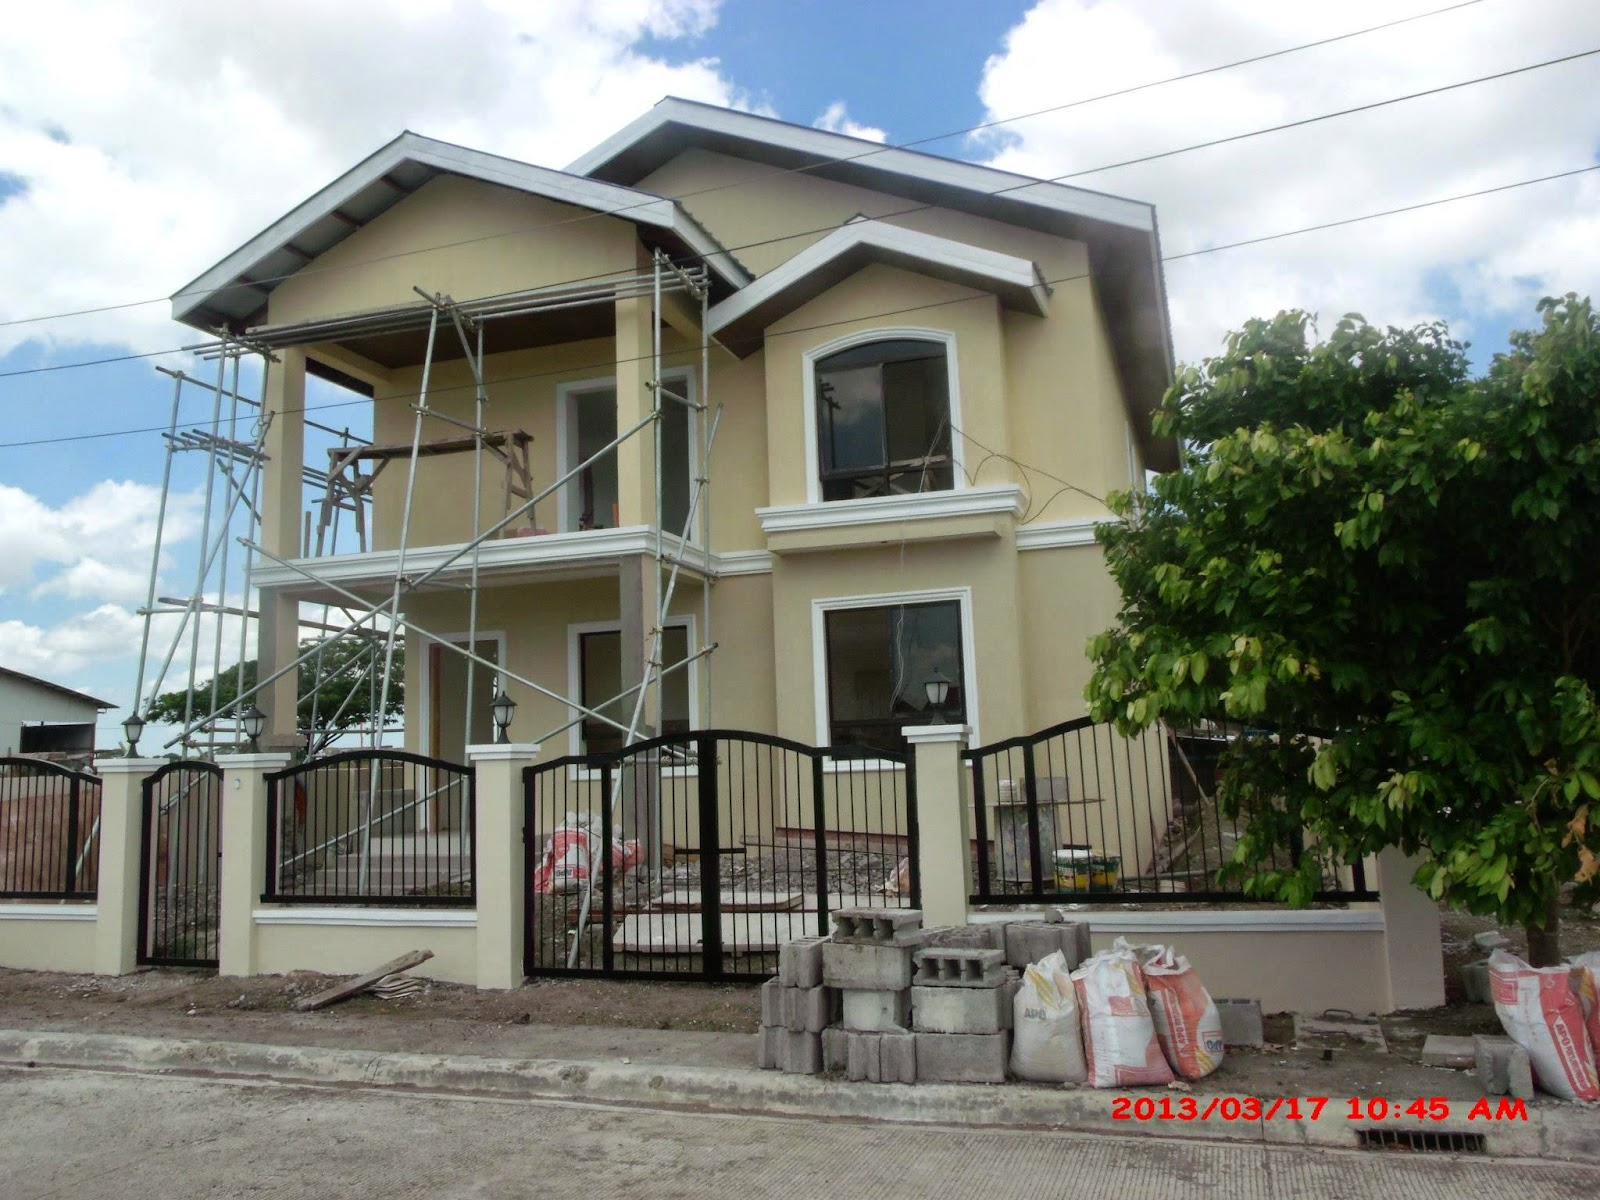 Savannah trails house construction project in oton iloilo for Home designs philippines